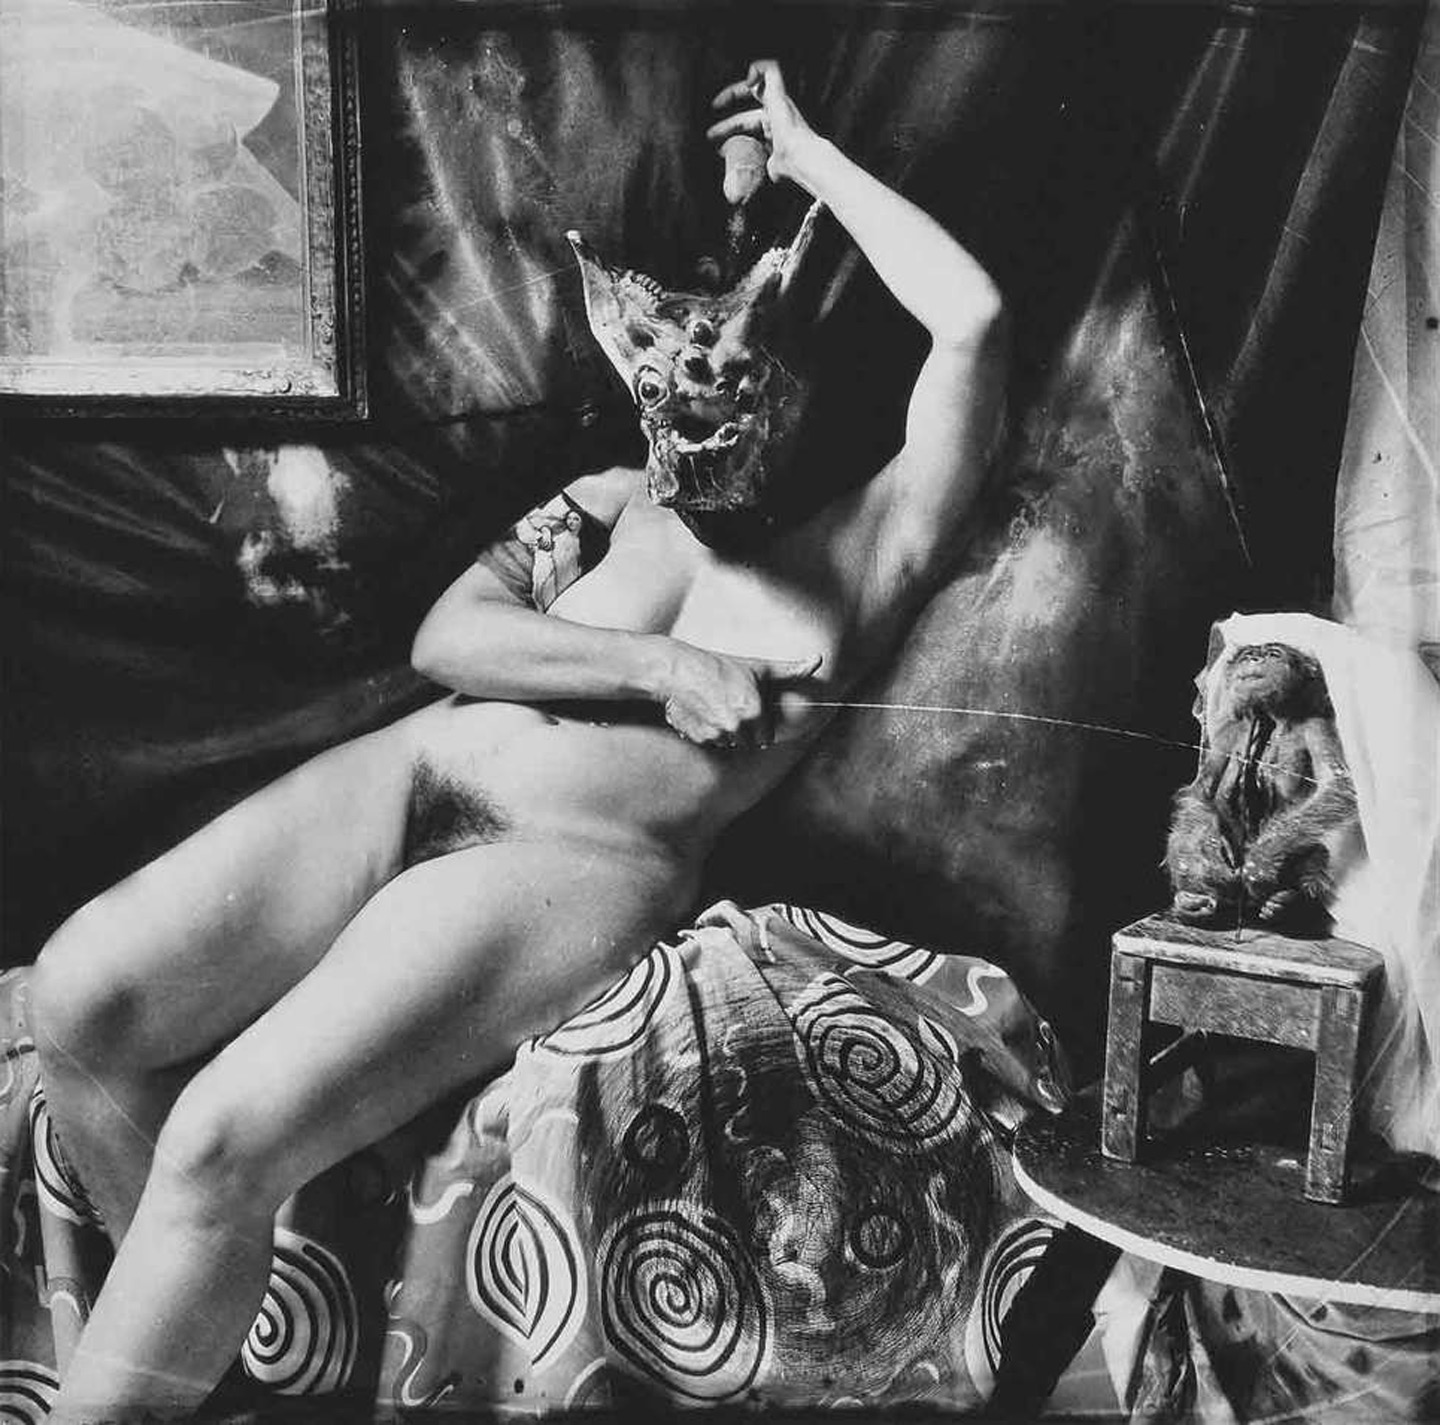 Joel-Peter Witkin: Songs of Experience, Limited Edition, and Songs of Innocence, Limited Edition (21st Platinum Edition) (with a Total, in Both Editions, of 2 Freestanding and 20 Bound Platinum Prints)